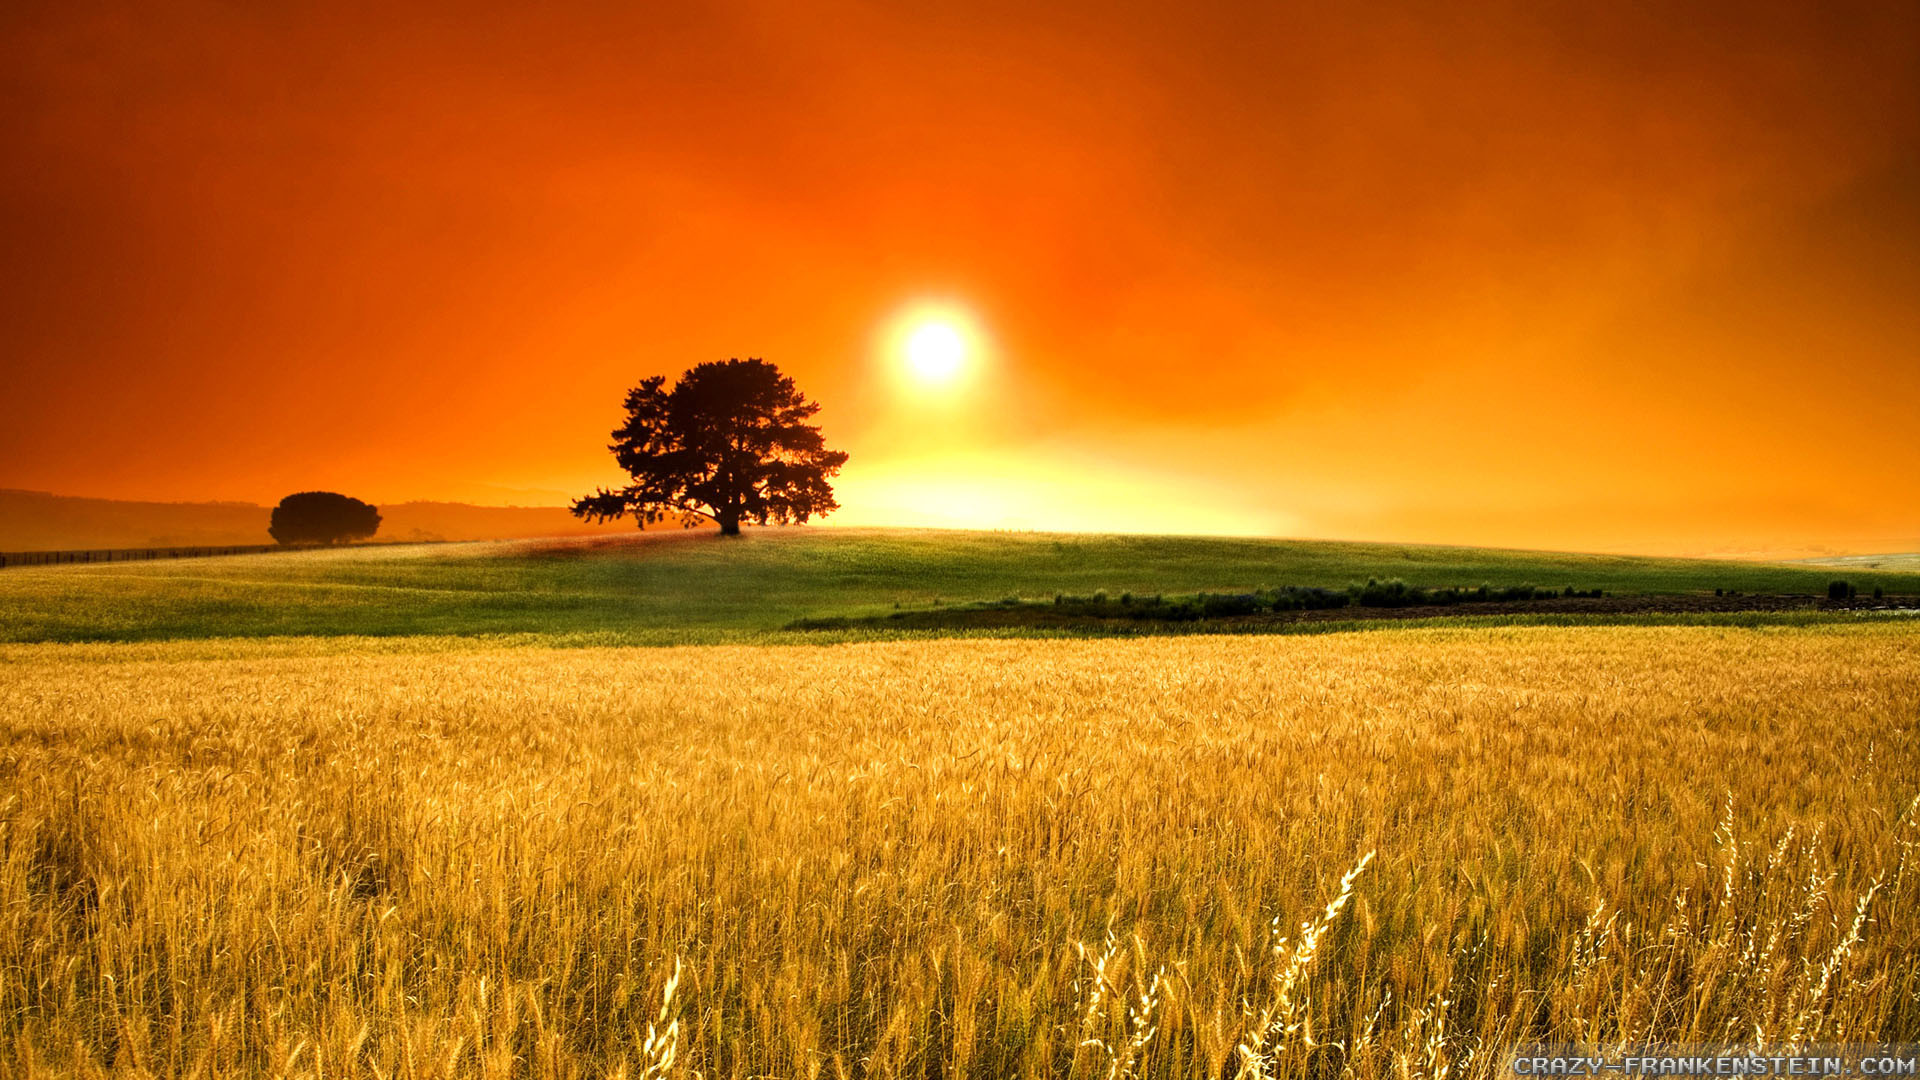 Wide HDQ Pretty Sunny Day Wallpapers 38 BSCB 1920x1080